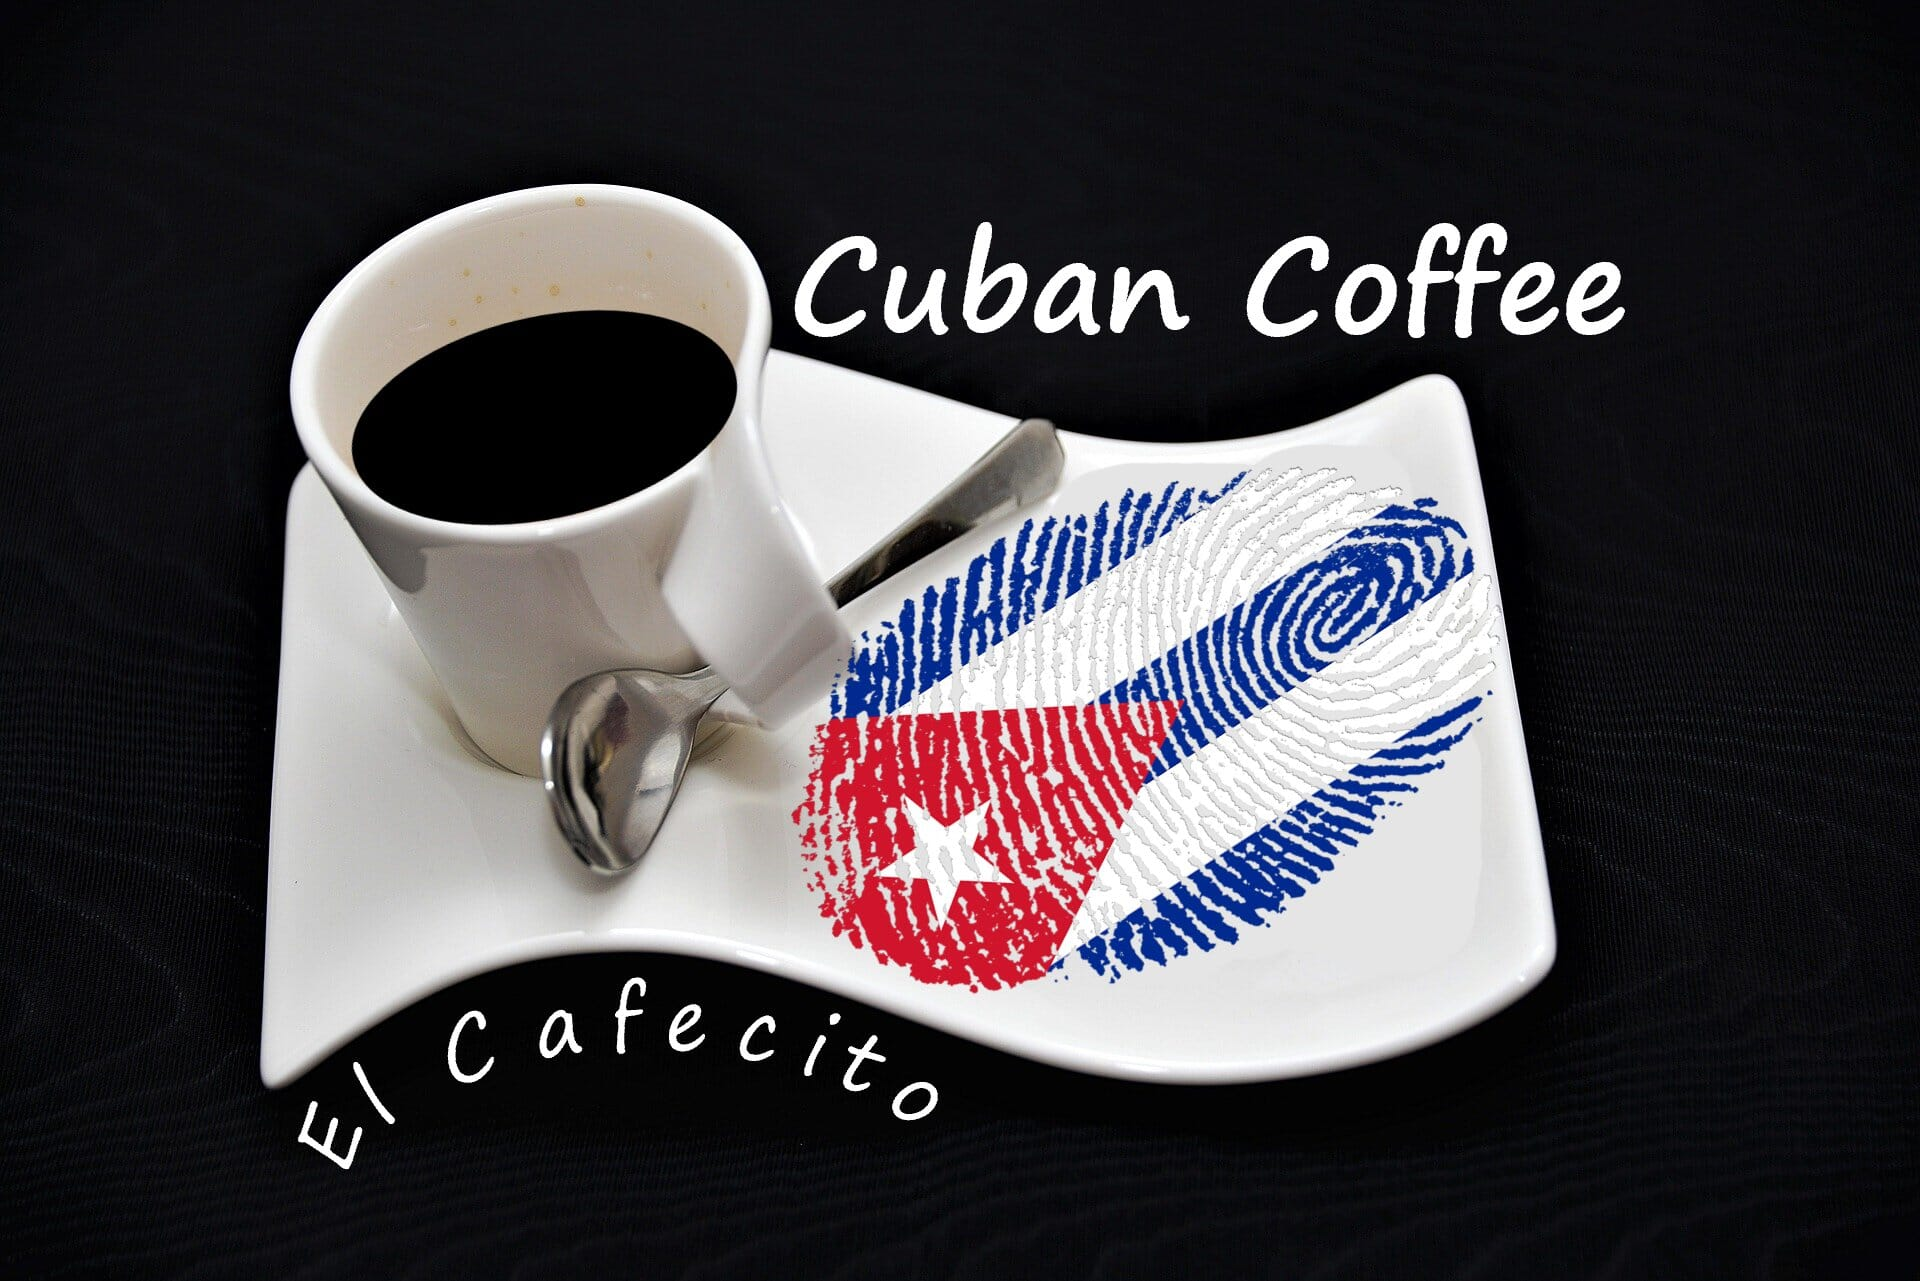 make cuban coffee with keurig - Cafe Cubano -El Cafecito